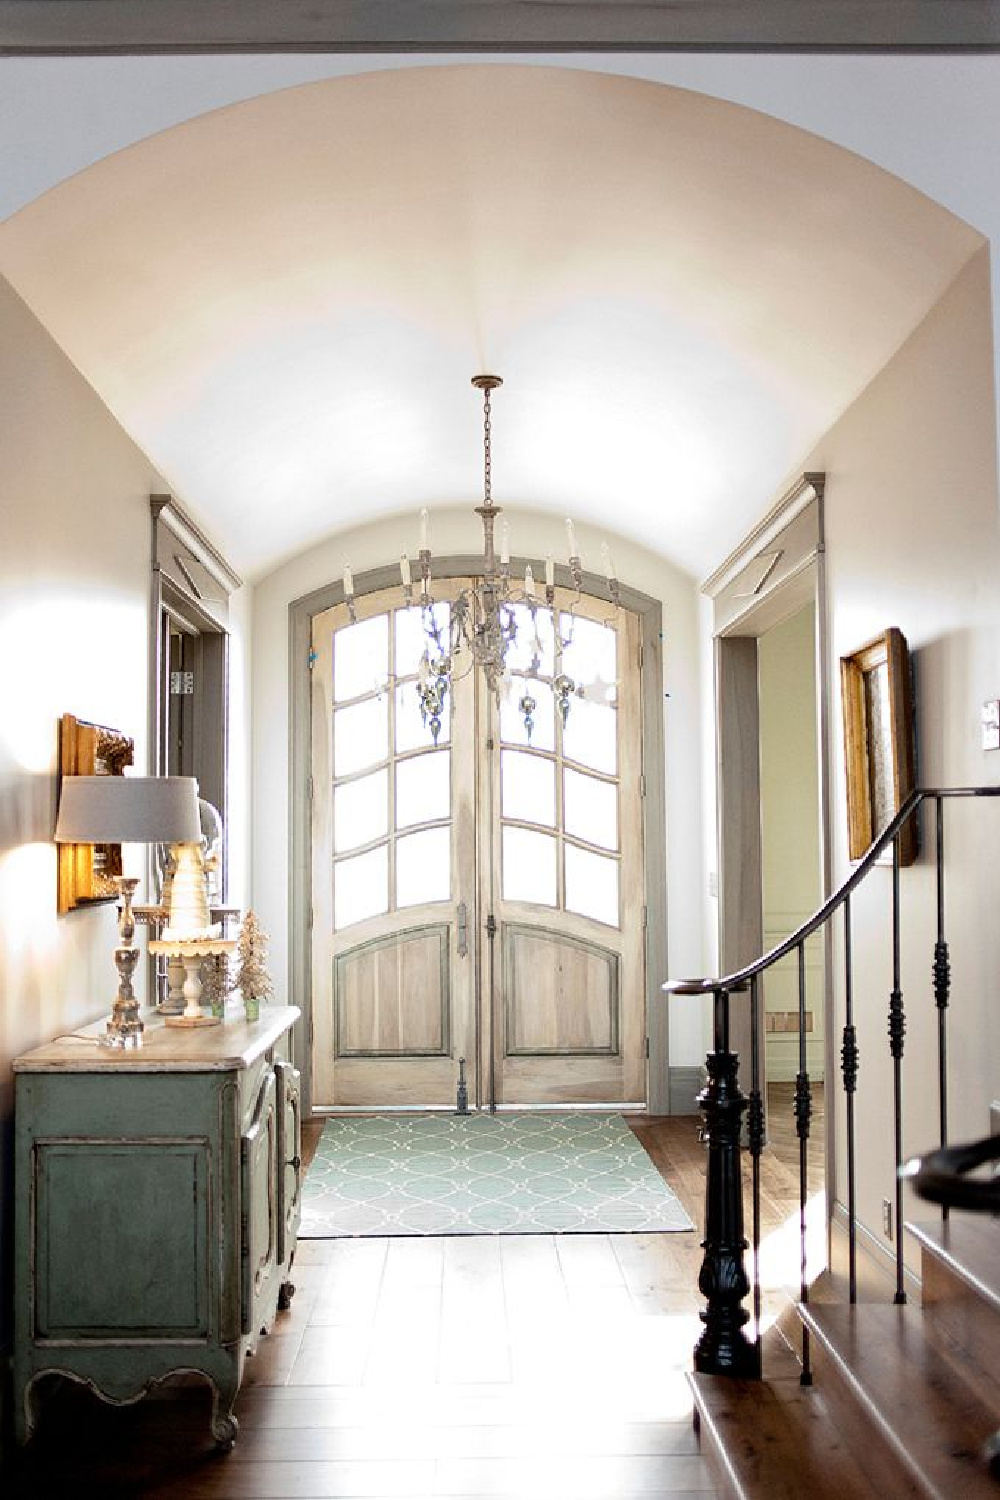 Gorgeous French Country entry with magnificent French doors - Decor de Provence. Come score ideas for a Timeless and Tranquil European Country Inspired Look. #europeancountry #interiordesign #frenchcountry